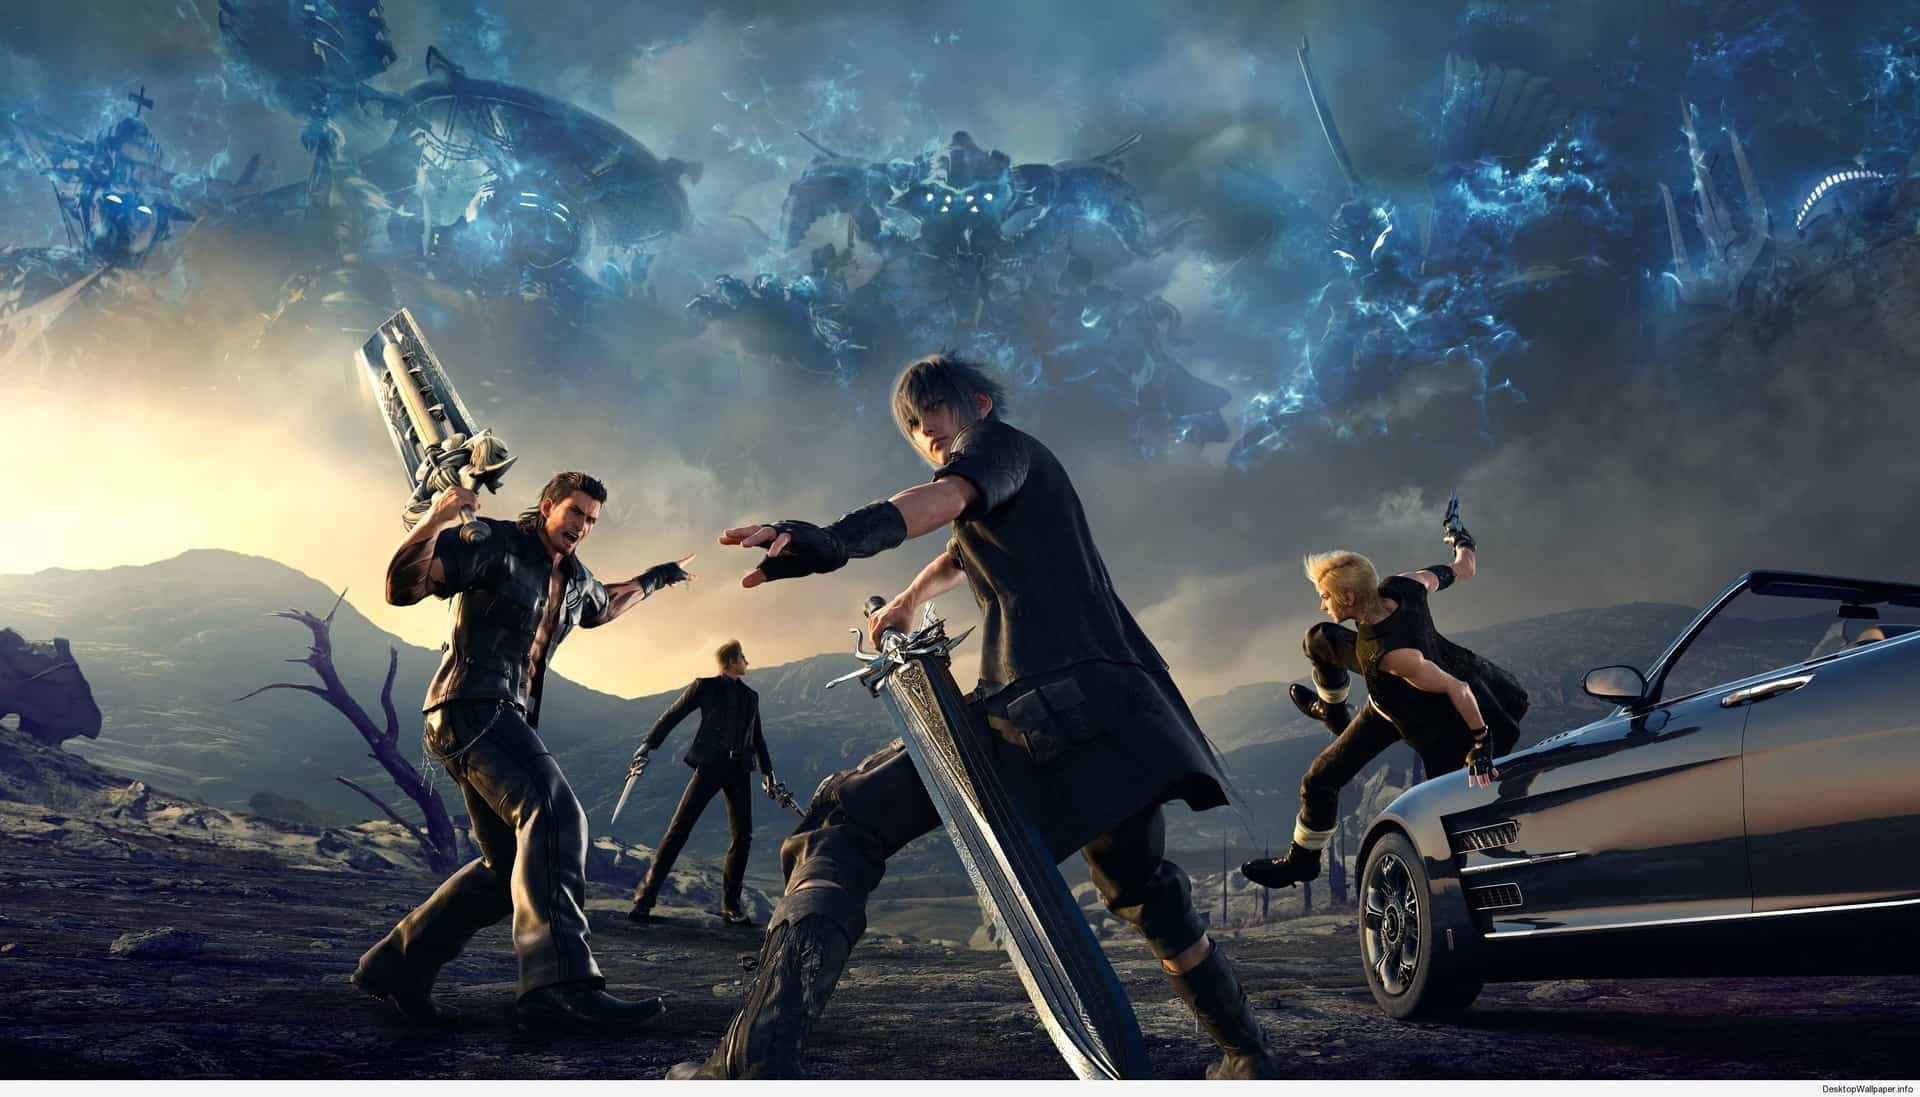 1920x1080 Final Fantasy 7 Wallpaper Awesome Final Fantasy Wallpaper for android Impremedia